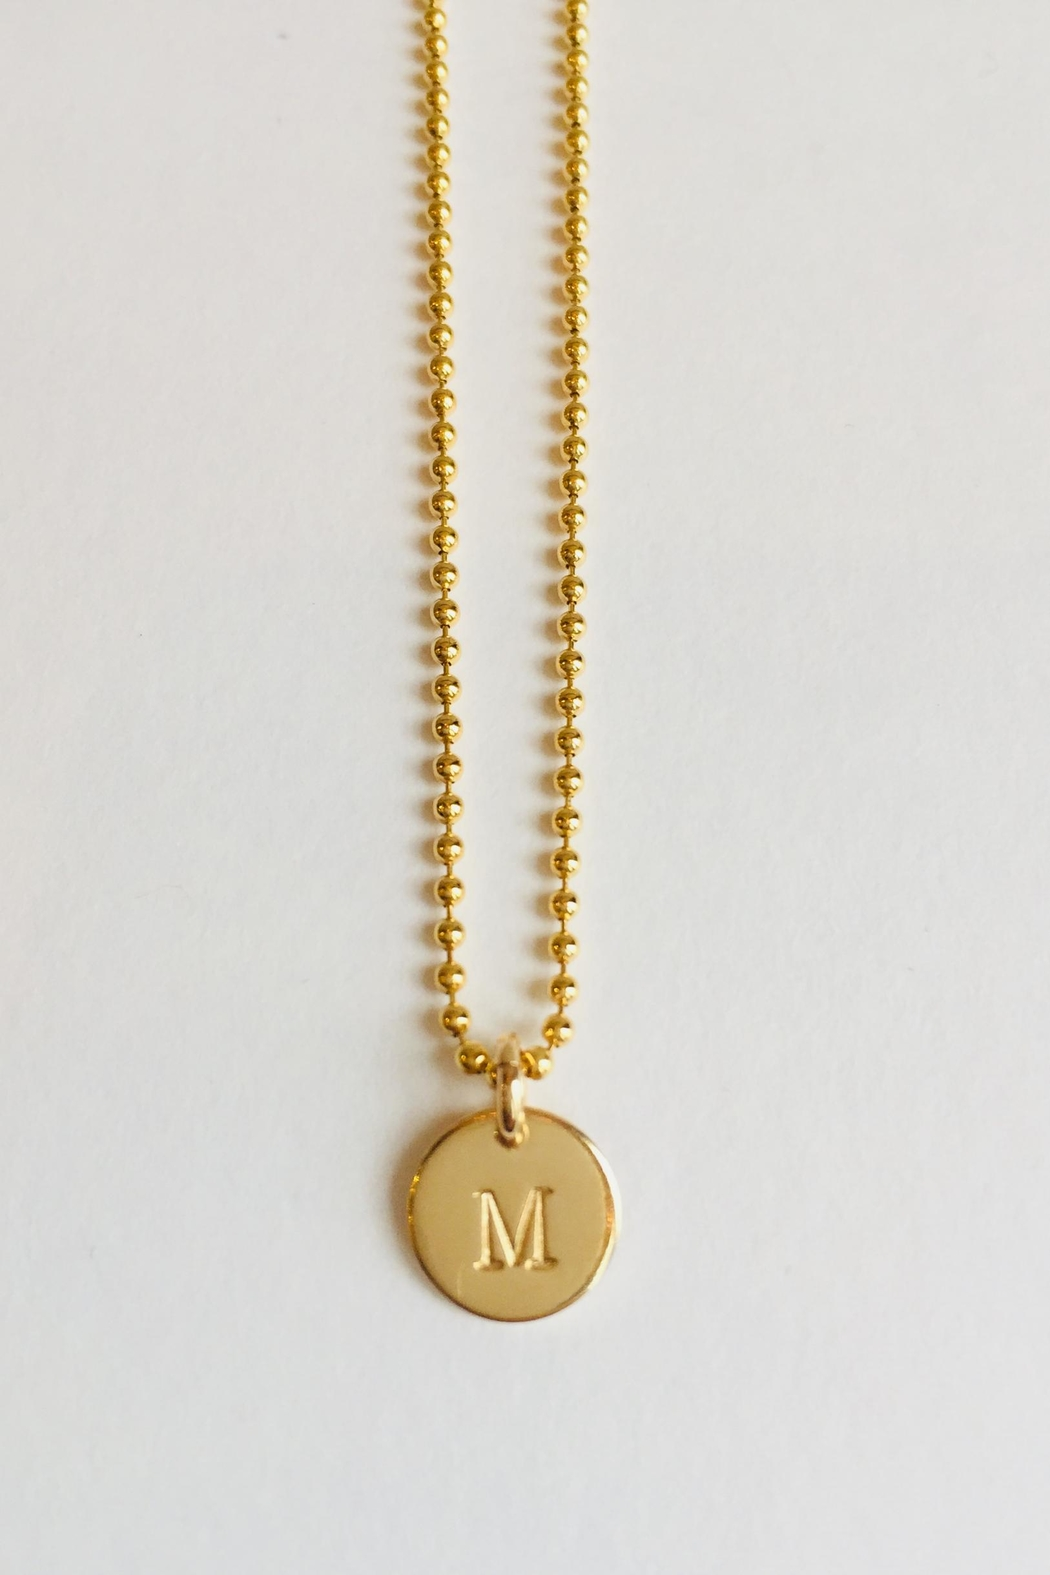 CARRIE'D AWAY Personalized Initial Necklace - Main Image